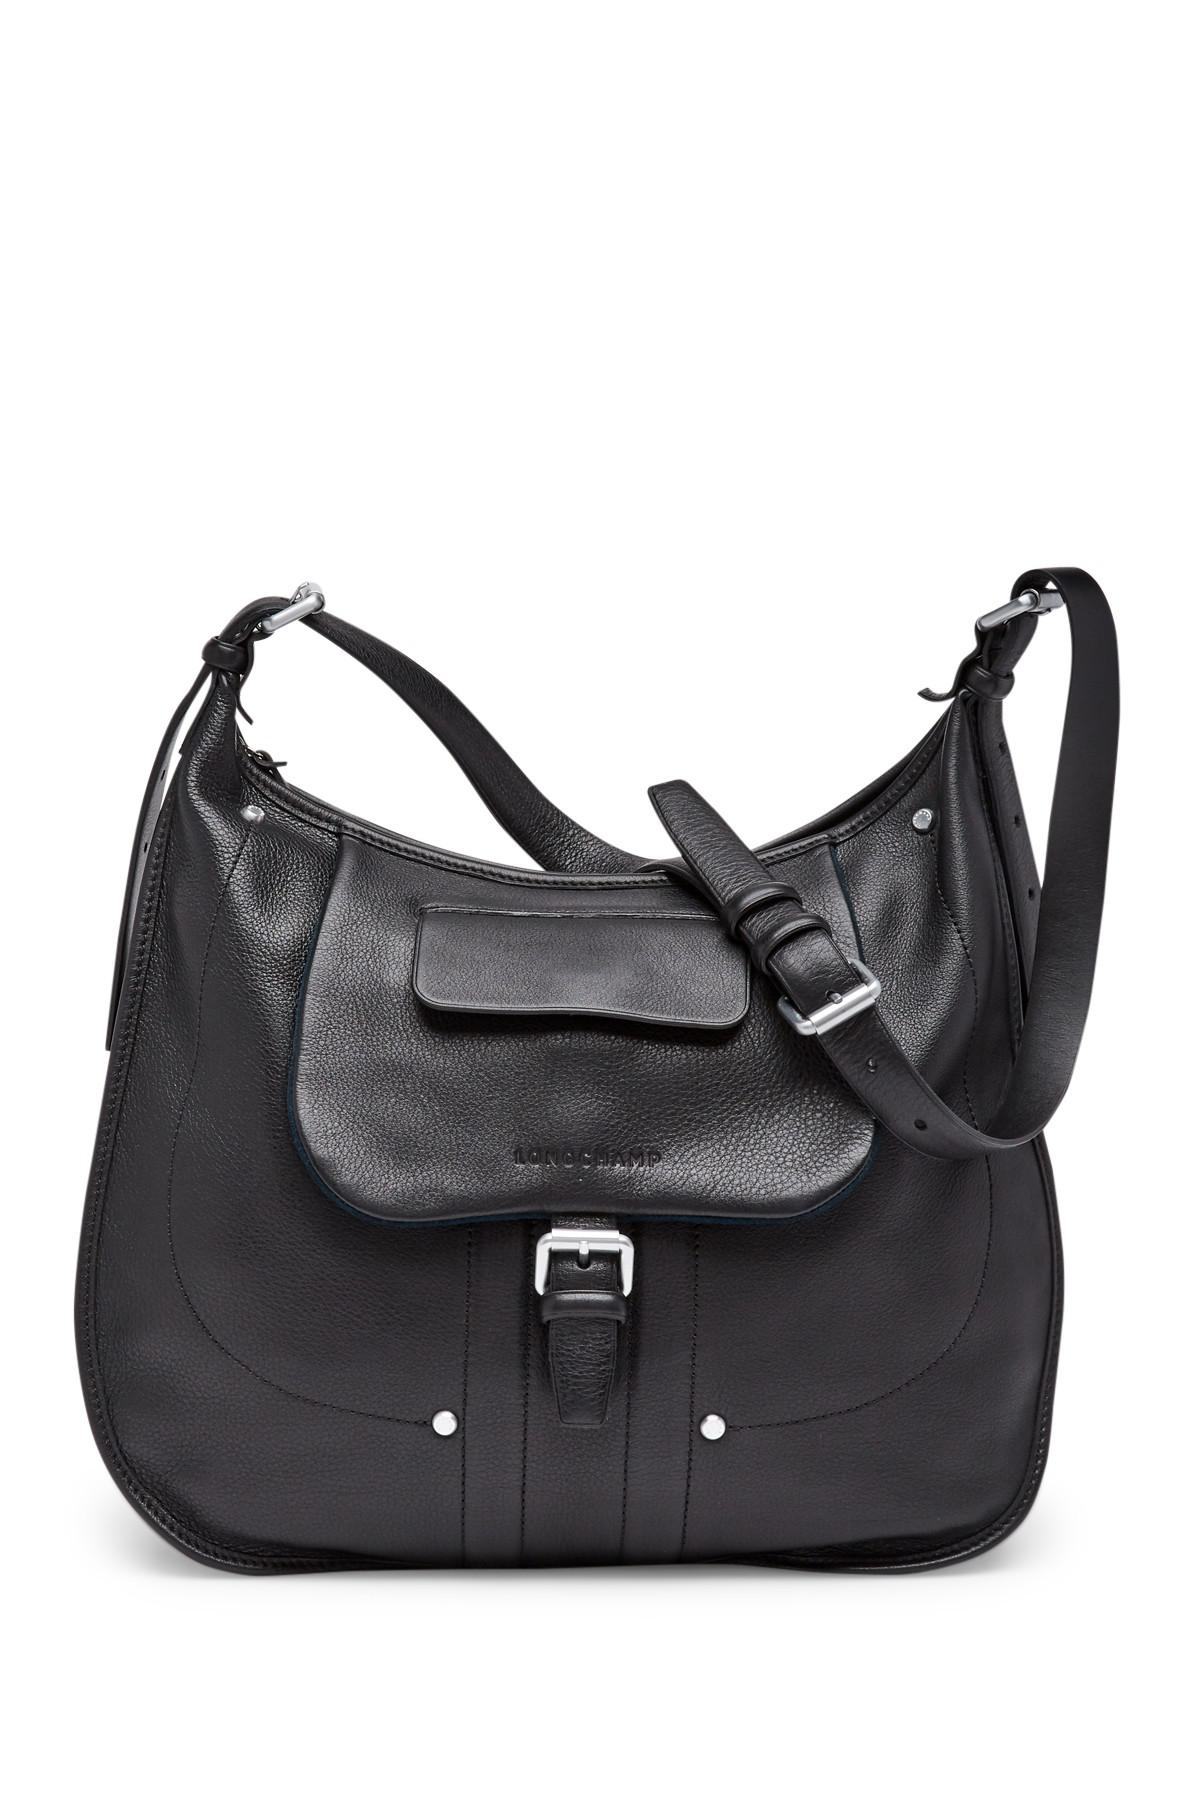 ecc82f64bc1 Longchamp Balzane Leather Hobo Bag in Black - Lyst